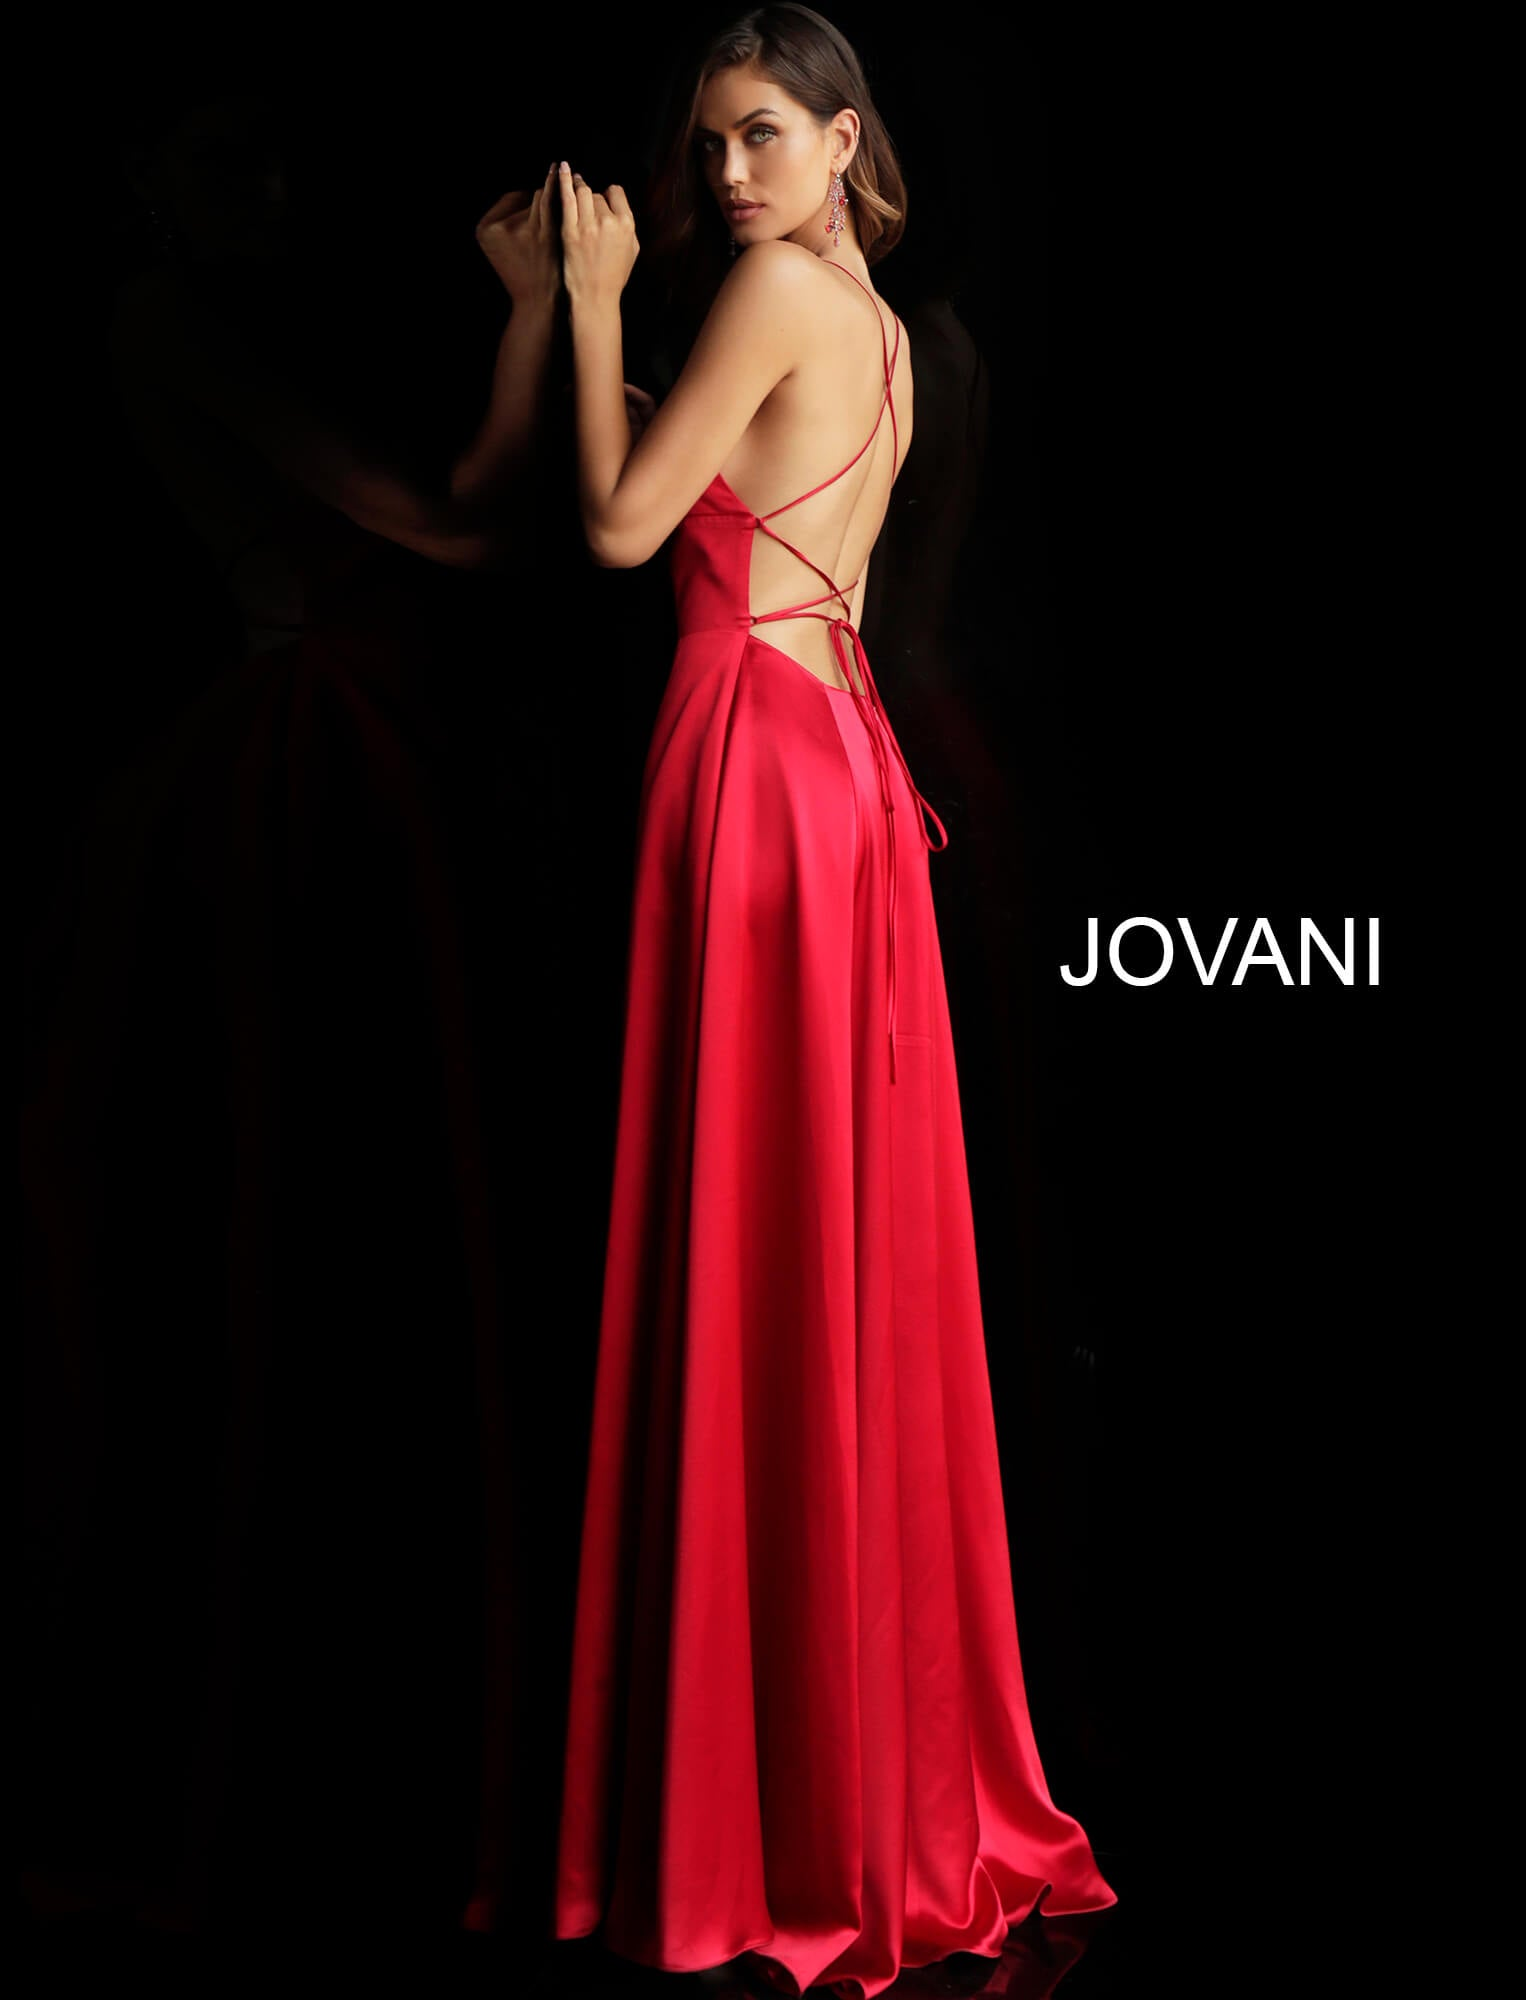 Jovani Red Satin Spaghetti Strap Gown